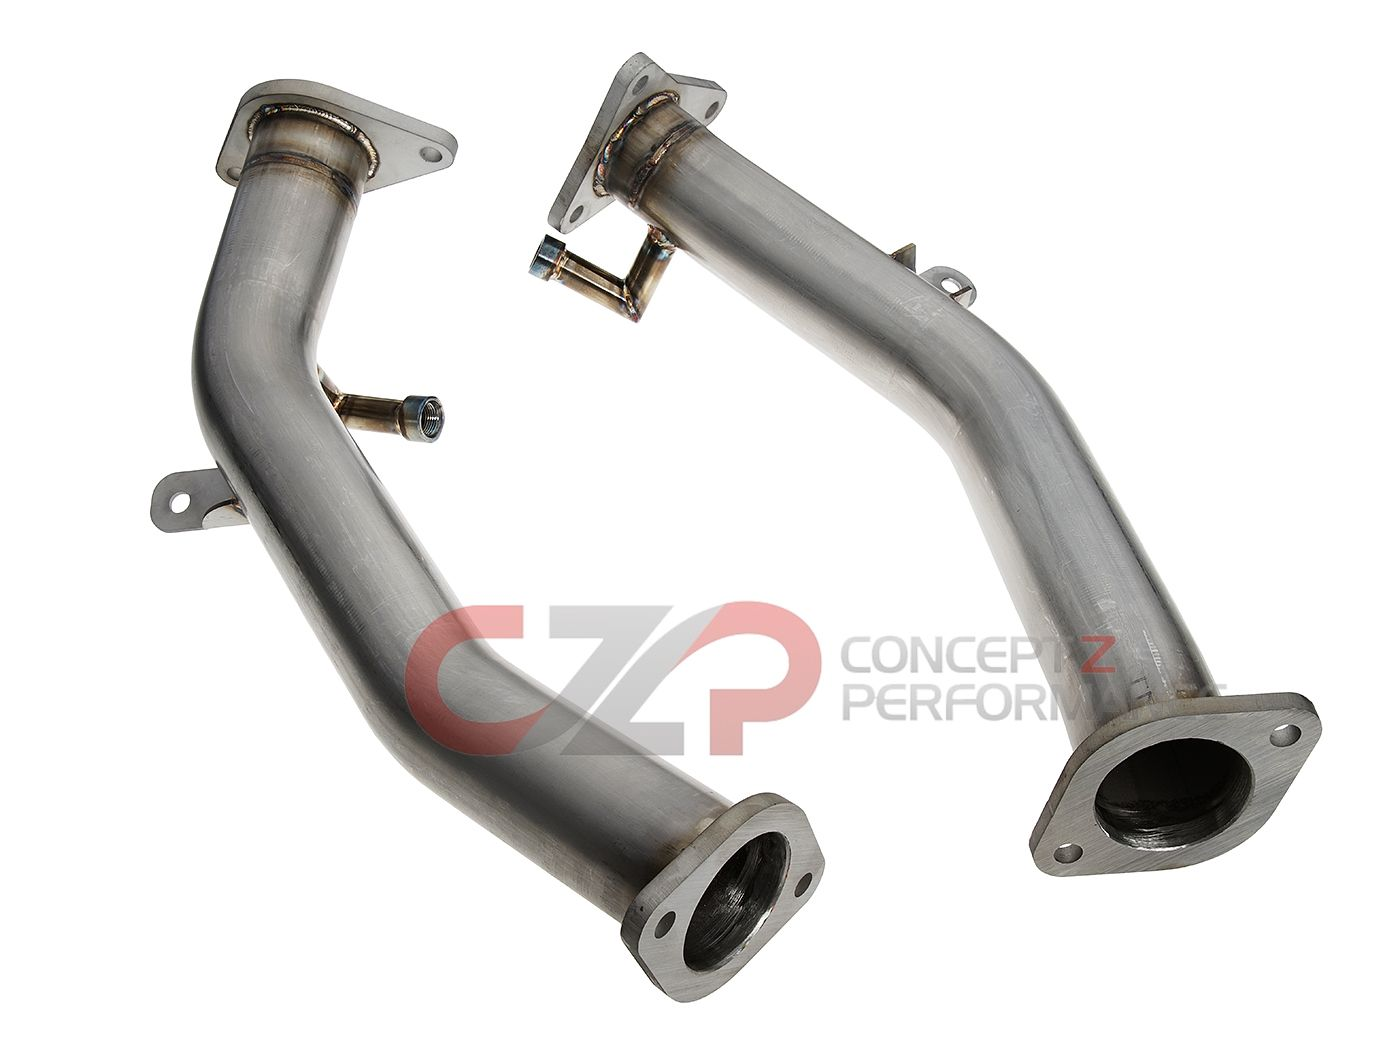 "CZP by PPE Stainless Steel Lower Downpipe / Test Pipe, 2.5"" - Infiniti Q50 / Q60 3.0t Premium / Red Sport RS400 VR30DDTT"